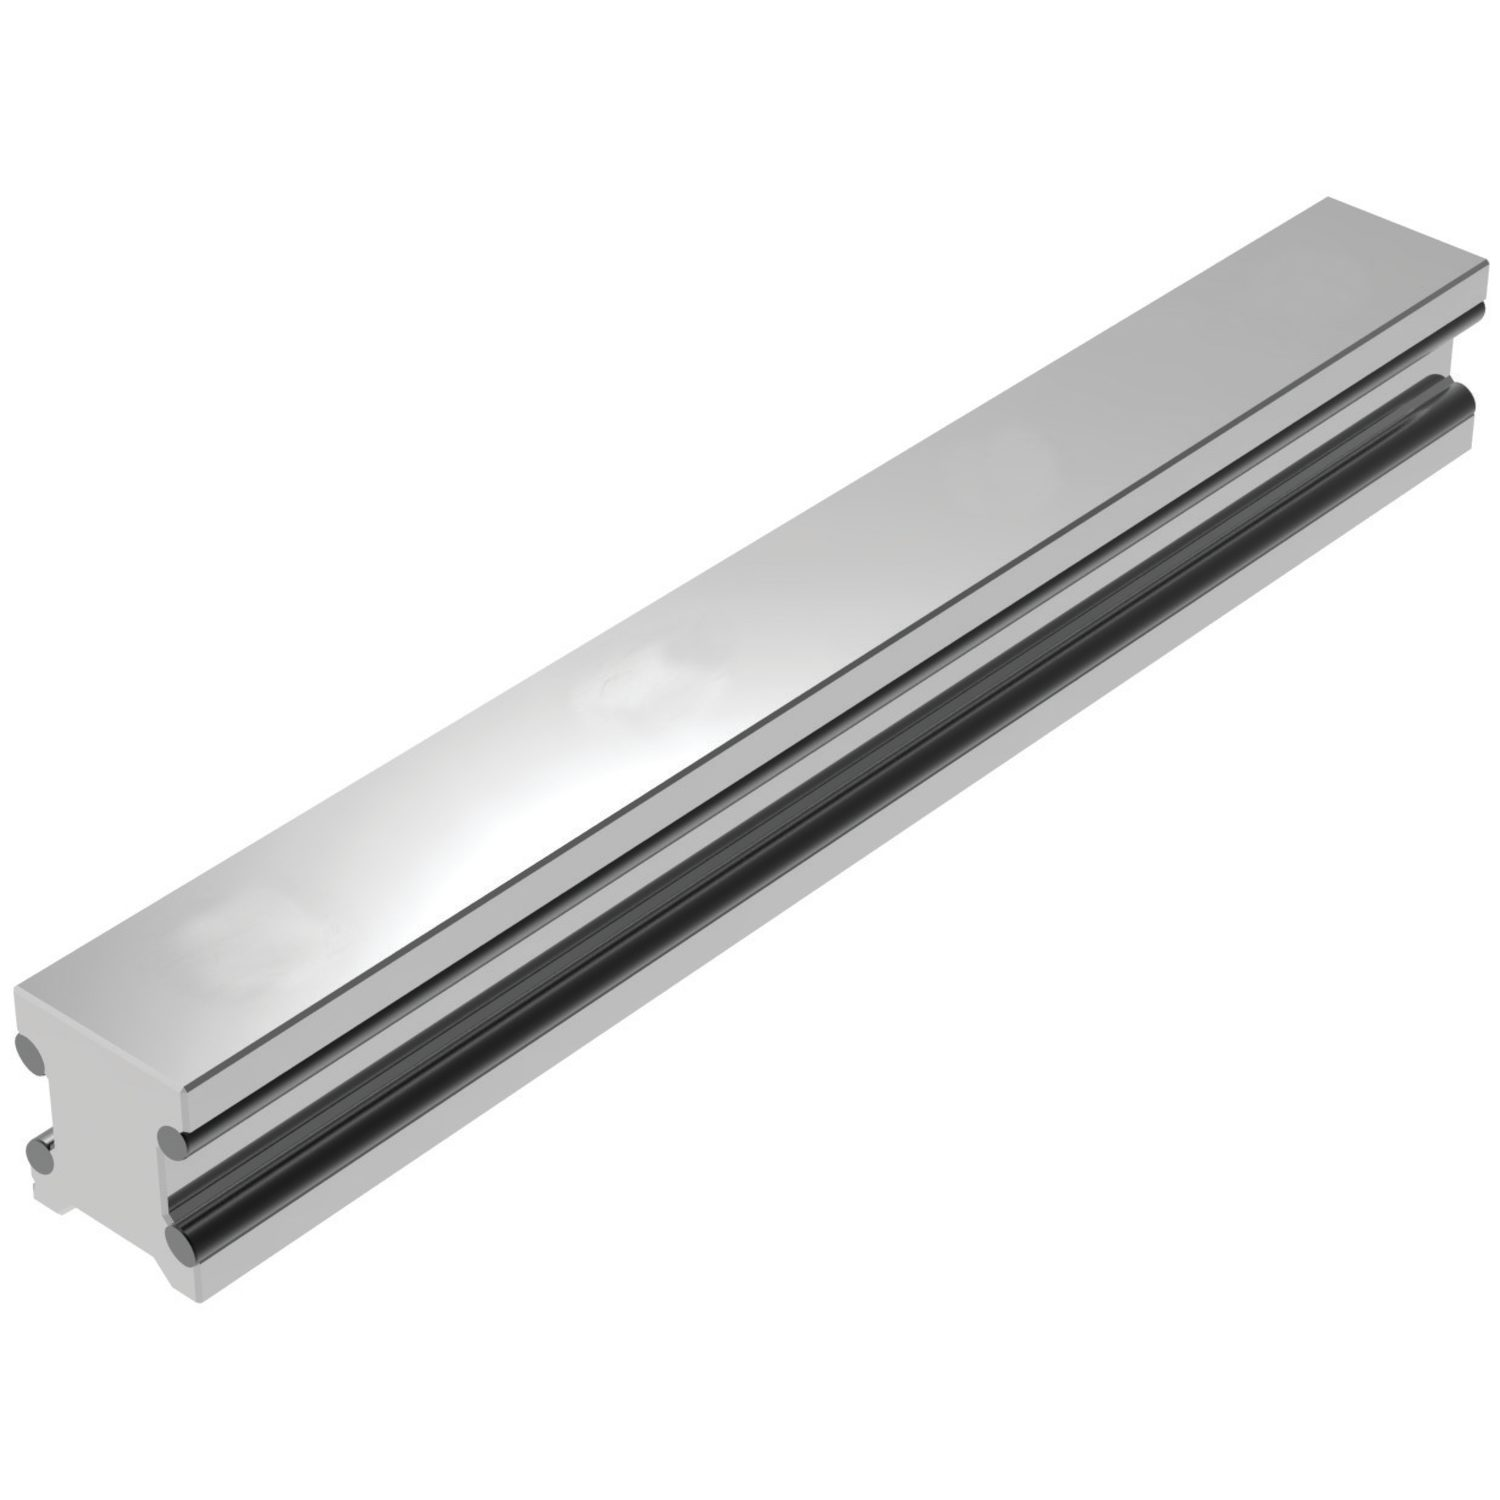 L1018.15 - 15mm Aluminium Linear Guide Rail